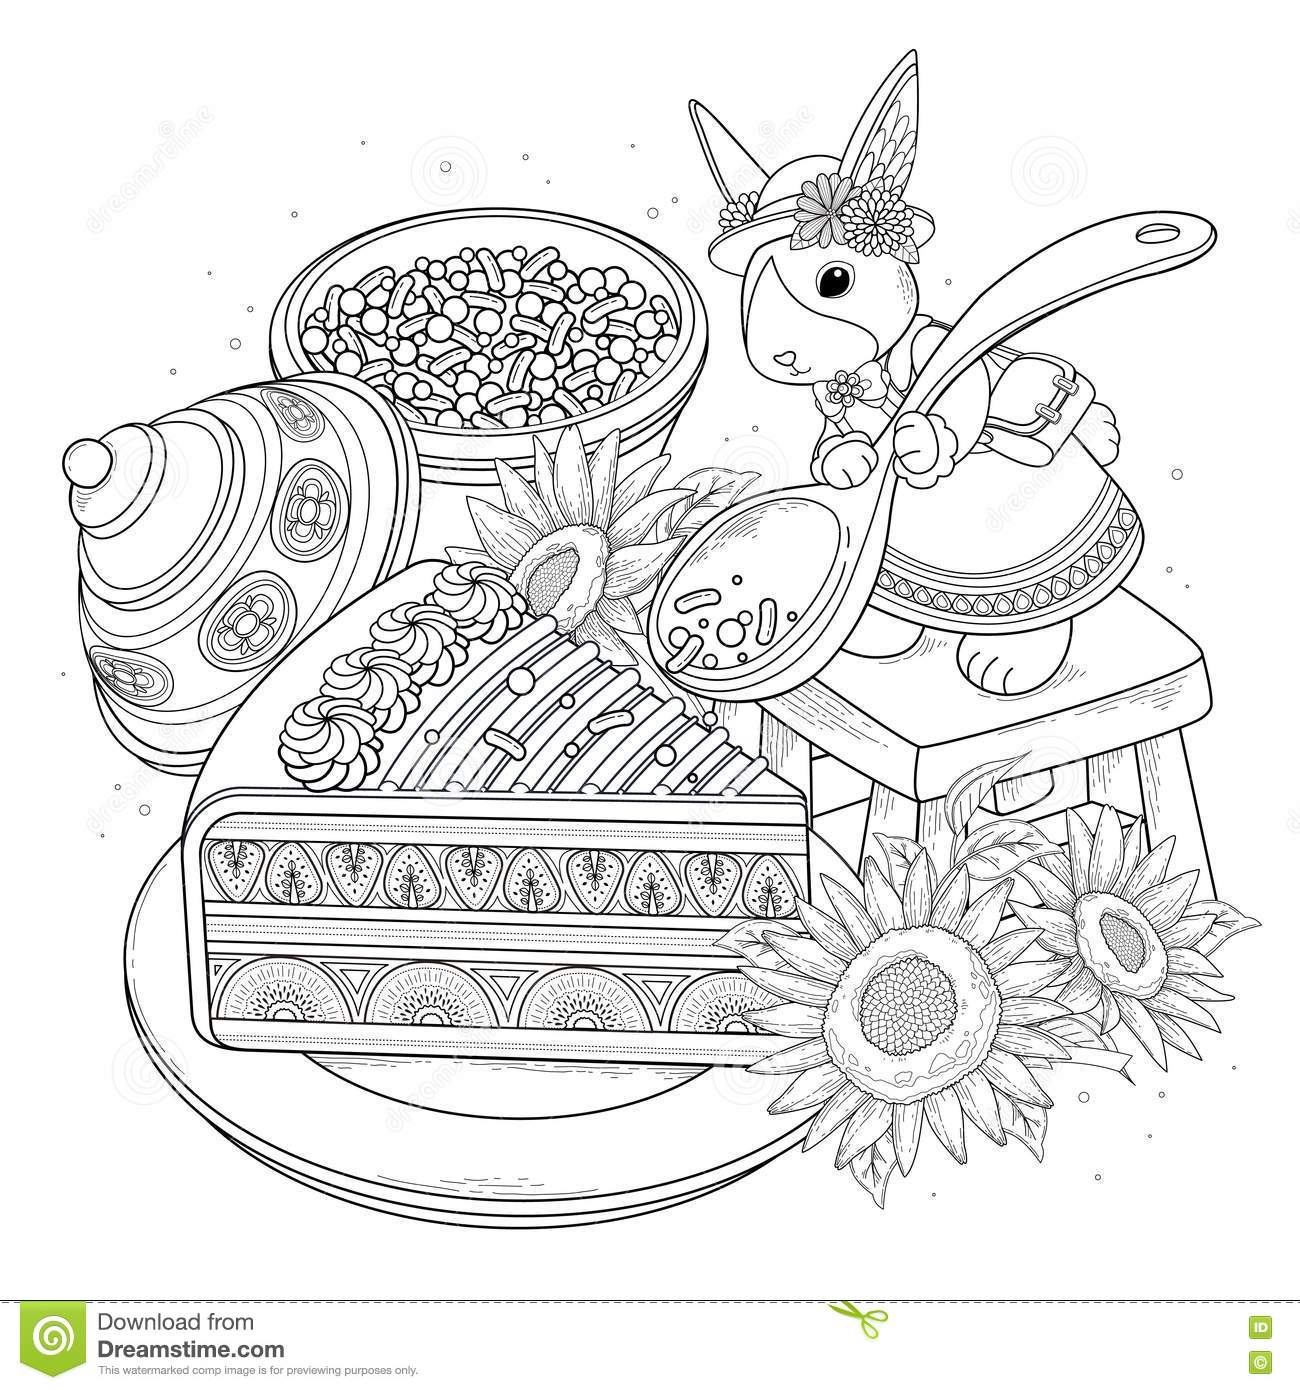 Pastries adult coloring page delicious snacks page for coloring elegant rabbit adding sugar on the cake